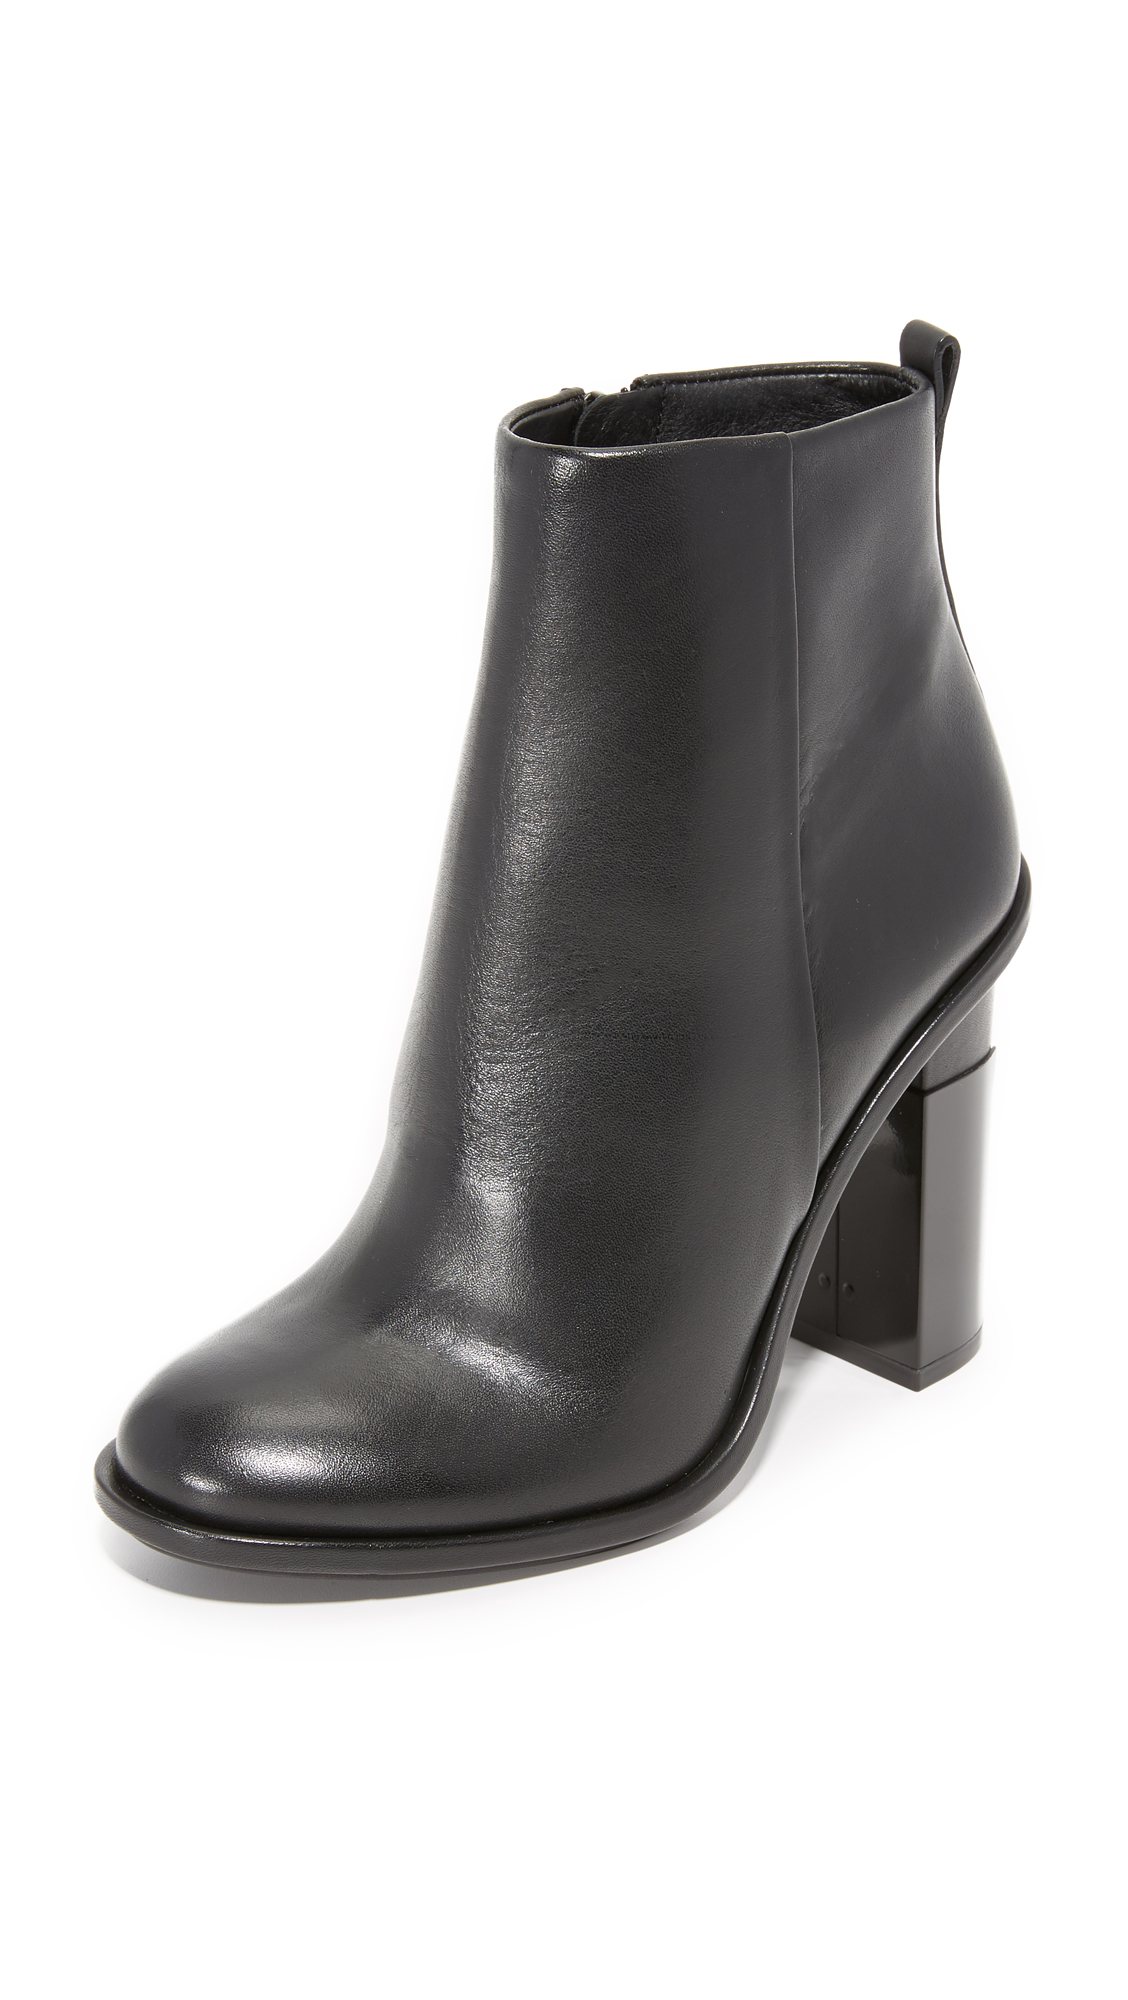 Tory Burch Gabrielle Booties - Black